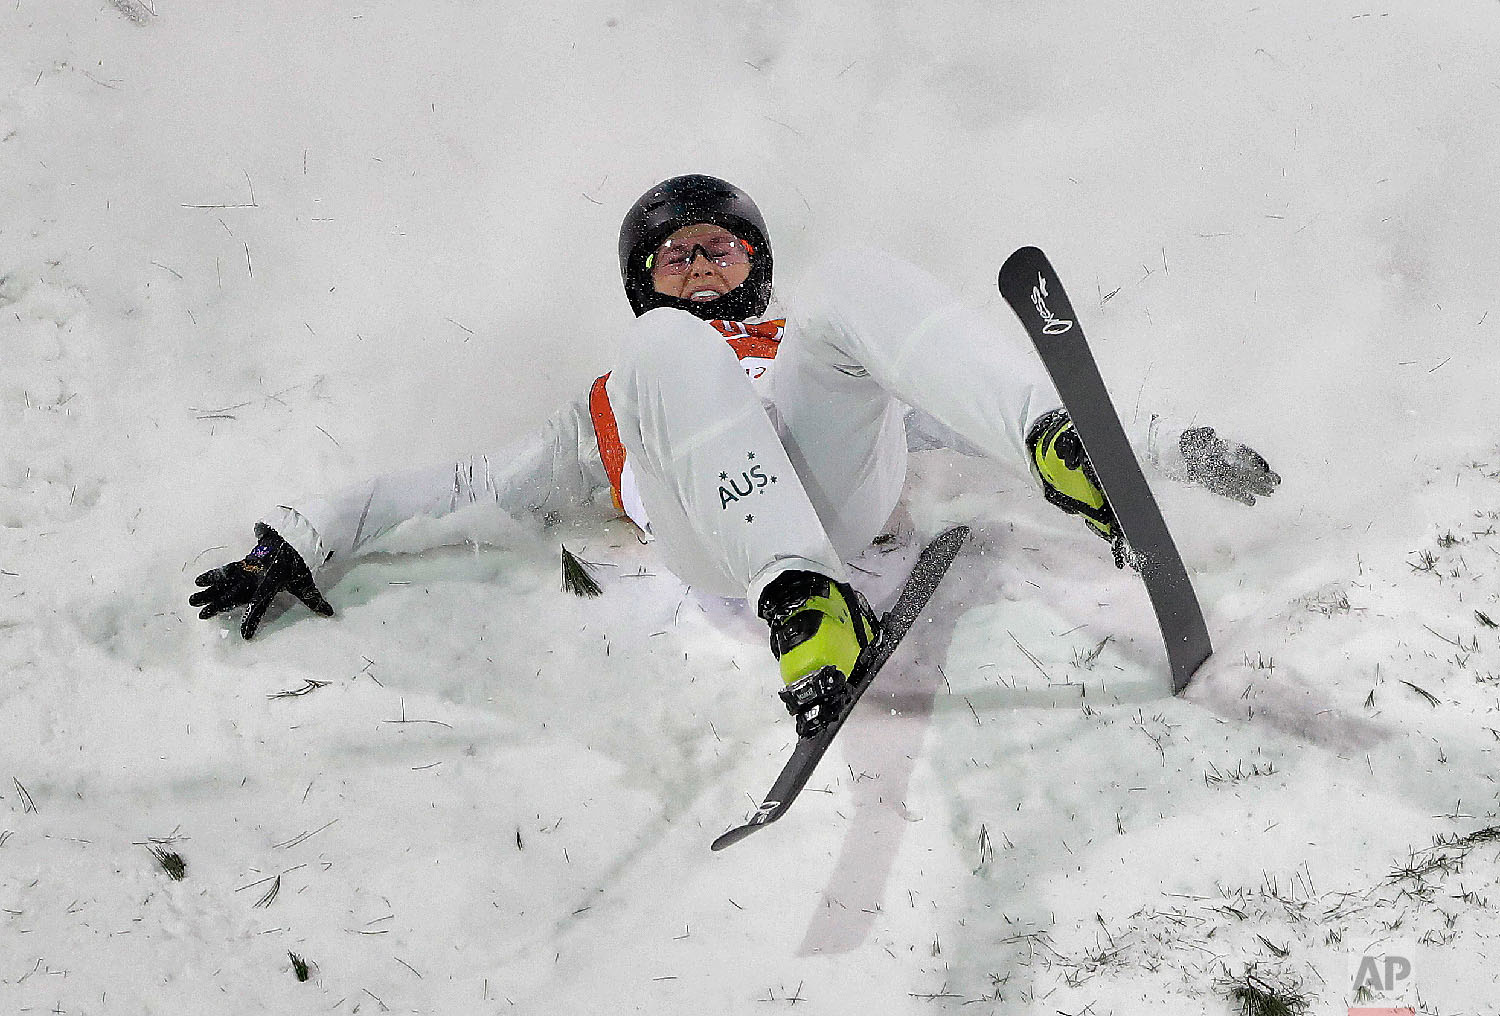 DanielleScott, of Australia, crashes during the women's freestyle aerial final at Phoenix Snow Park at the 2018 Winter Olympics in Pyeongchang, South Korea, Friday, Feb. 16, 2018. (AP Photo/Gregory Bull)